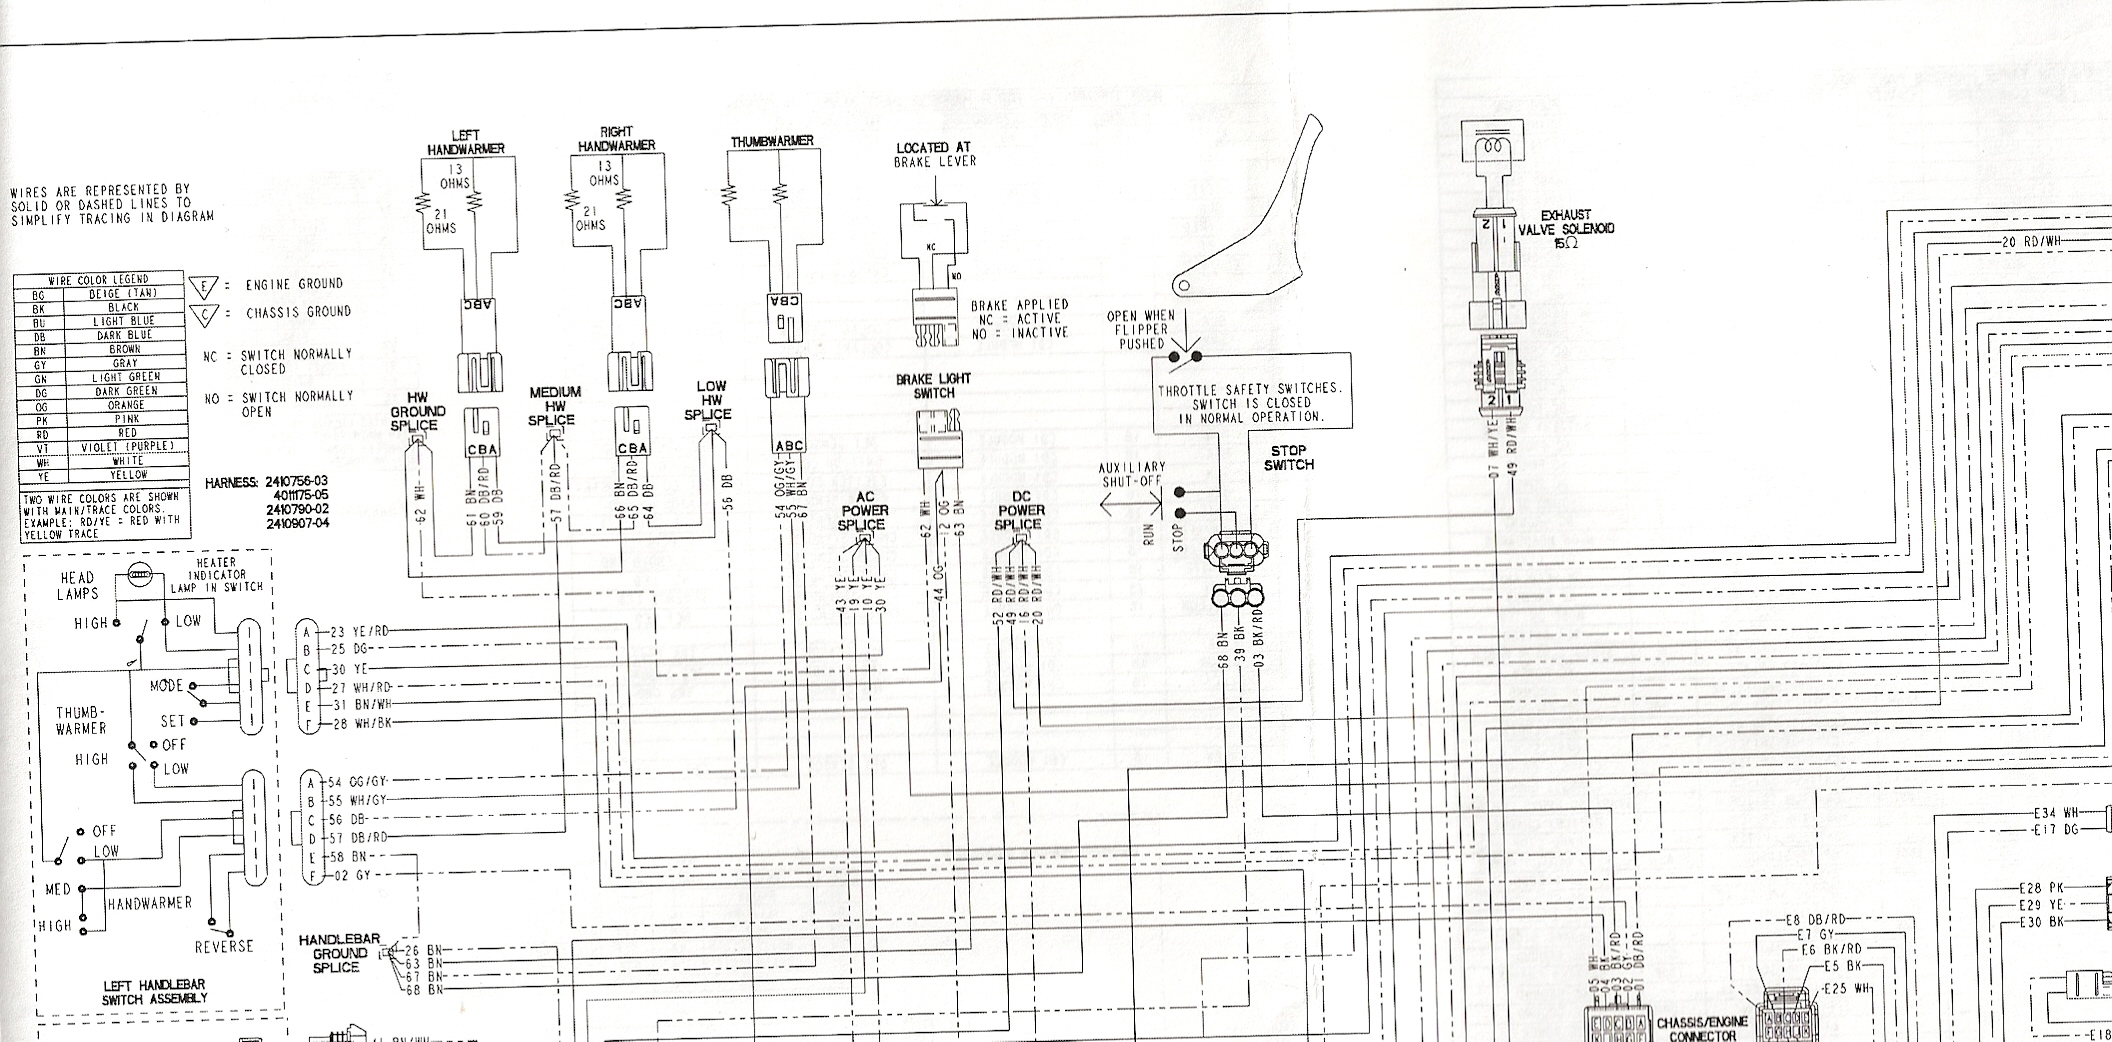 2009 polaris dragon 800 wiring diagram